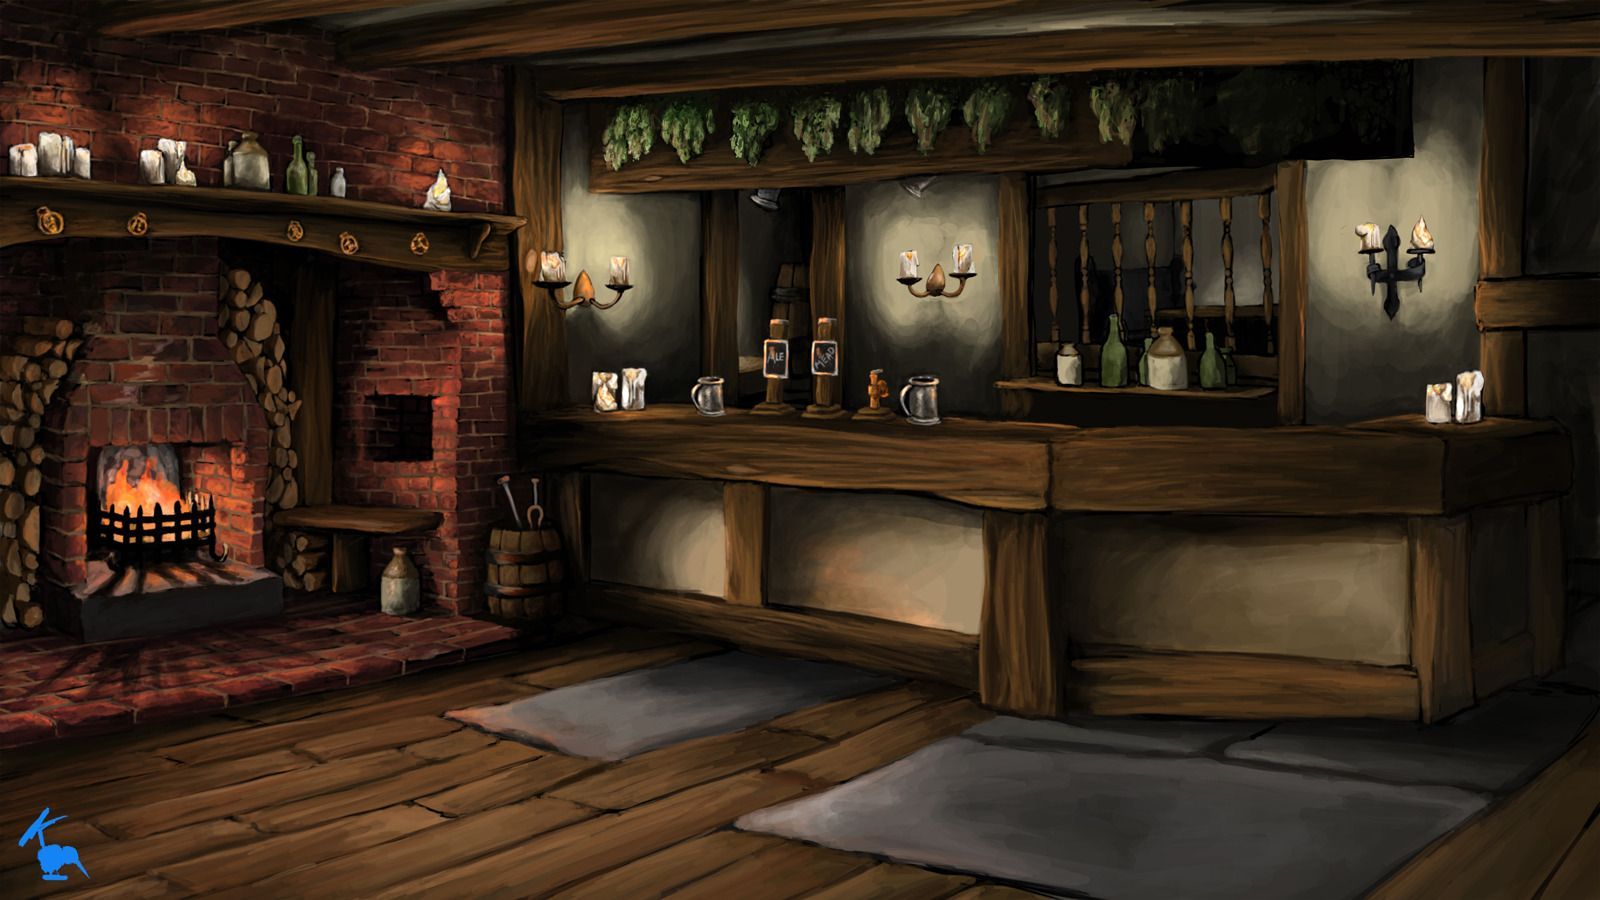 Pics For Pub Wallpaper HD Wallpapers Download Free Images Wallpaper [1000image.com]